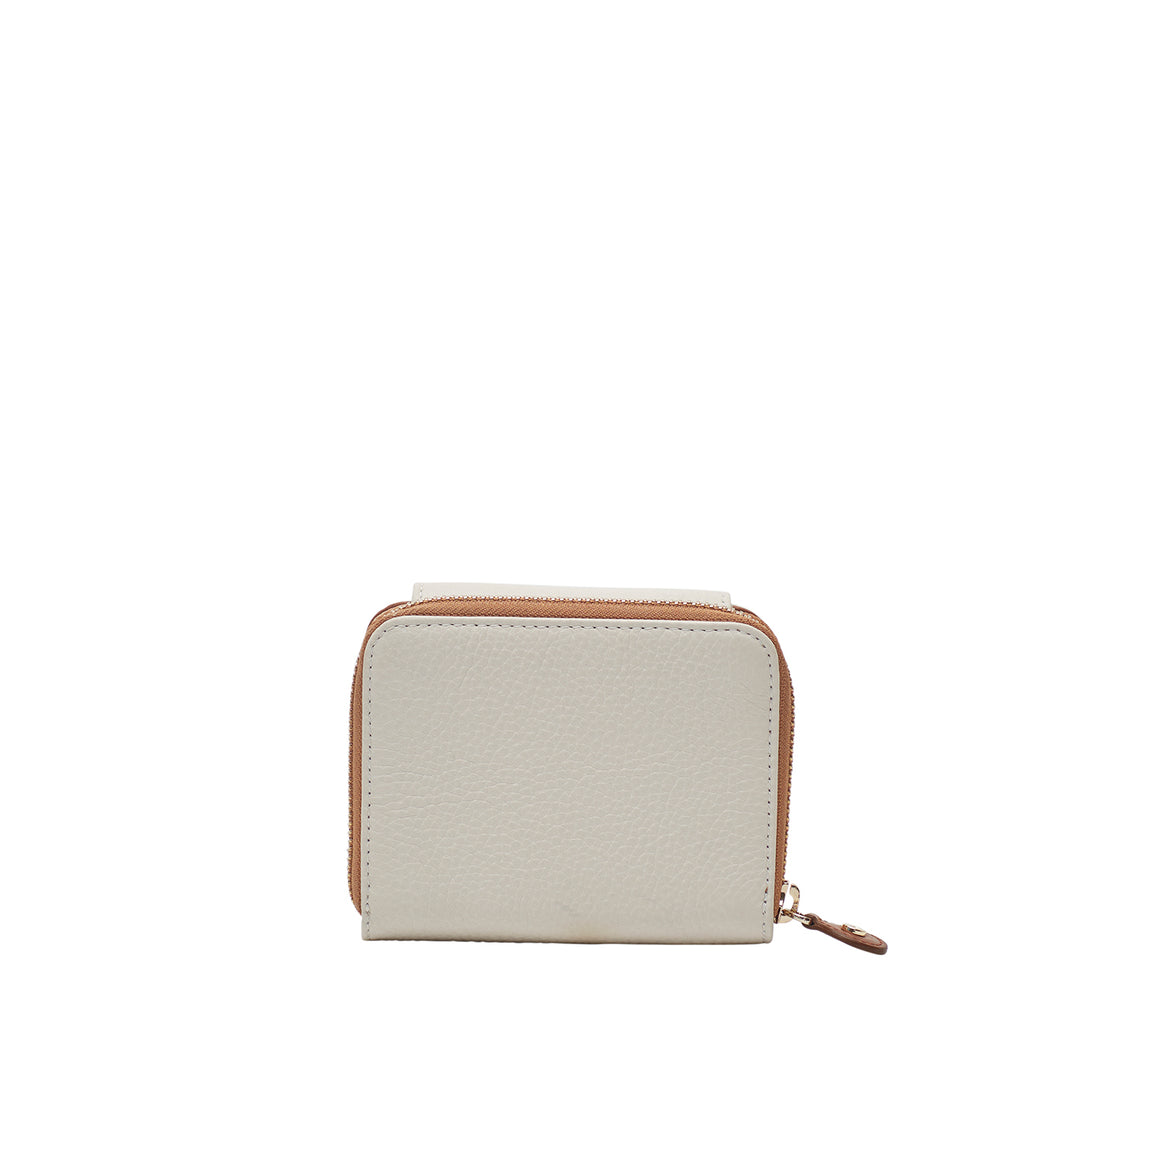 WT 0019 - TOHL COMPTON MINI WOMEN'S WALLET - WHITE